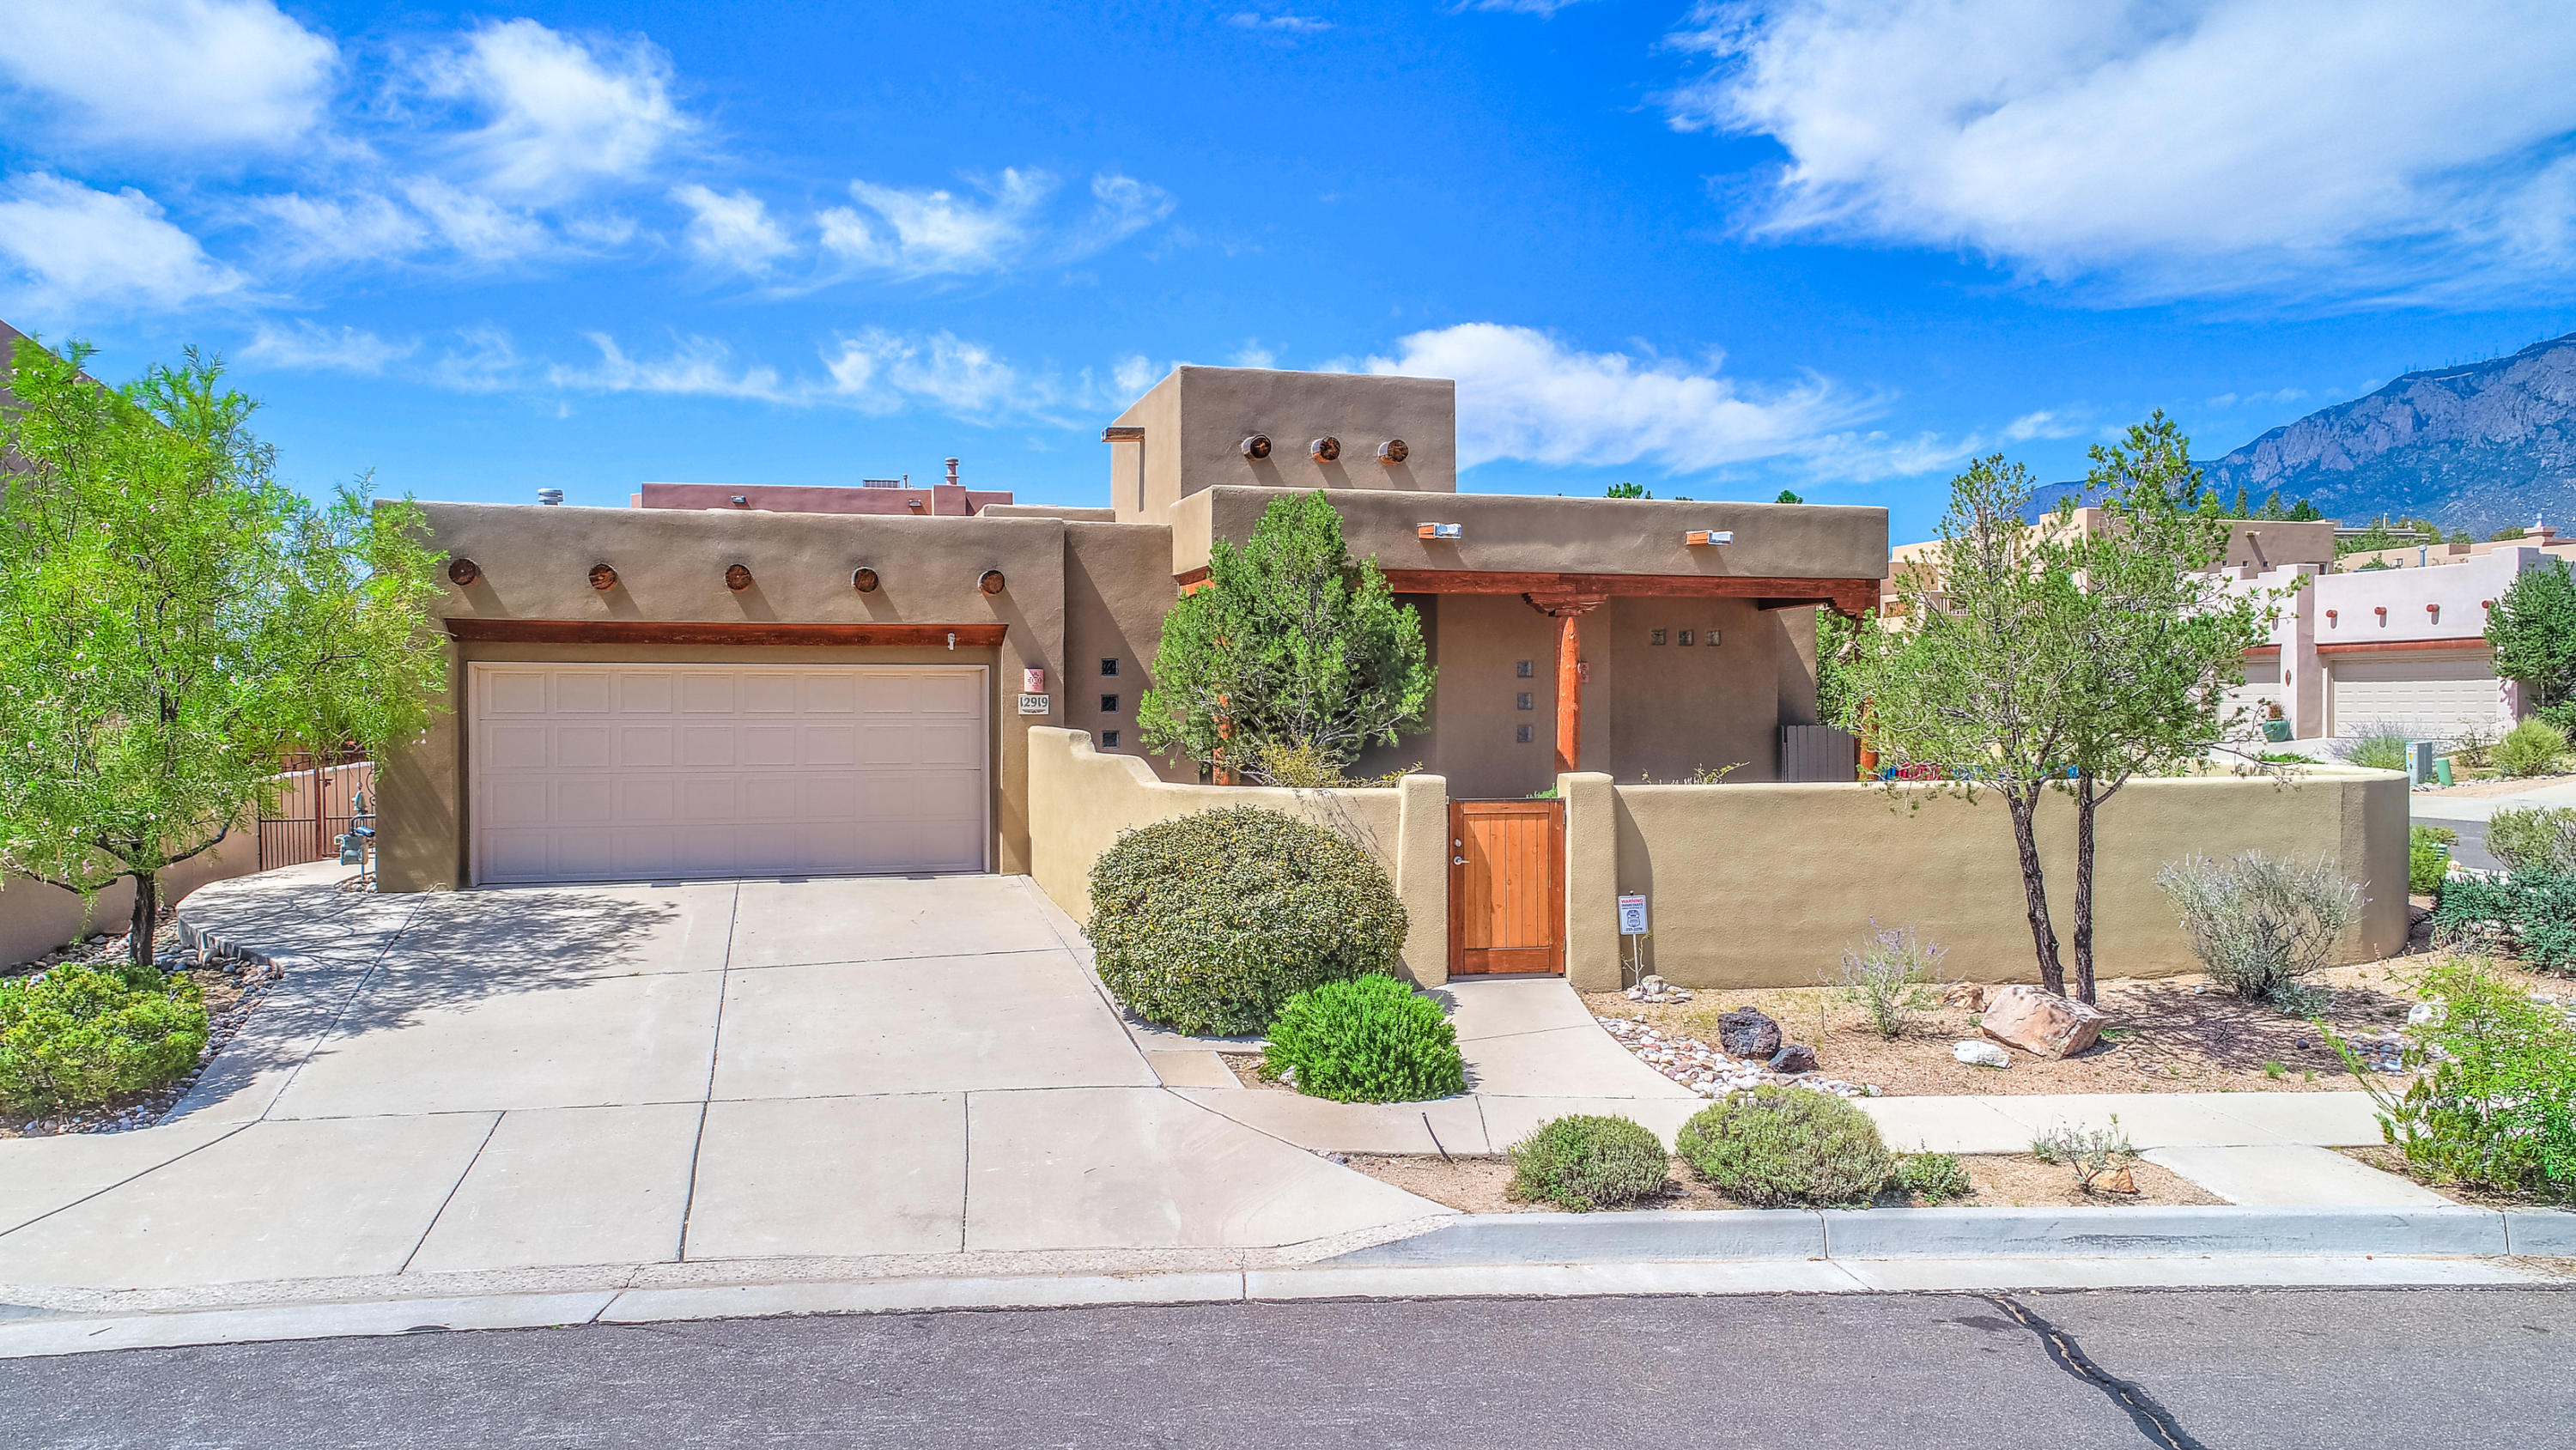 3 Bed 2 Full 1 Partial Baths Home In Albuquerque For 480000